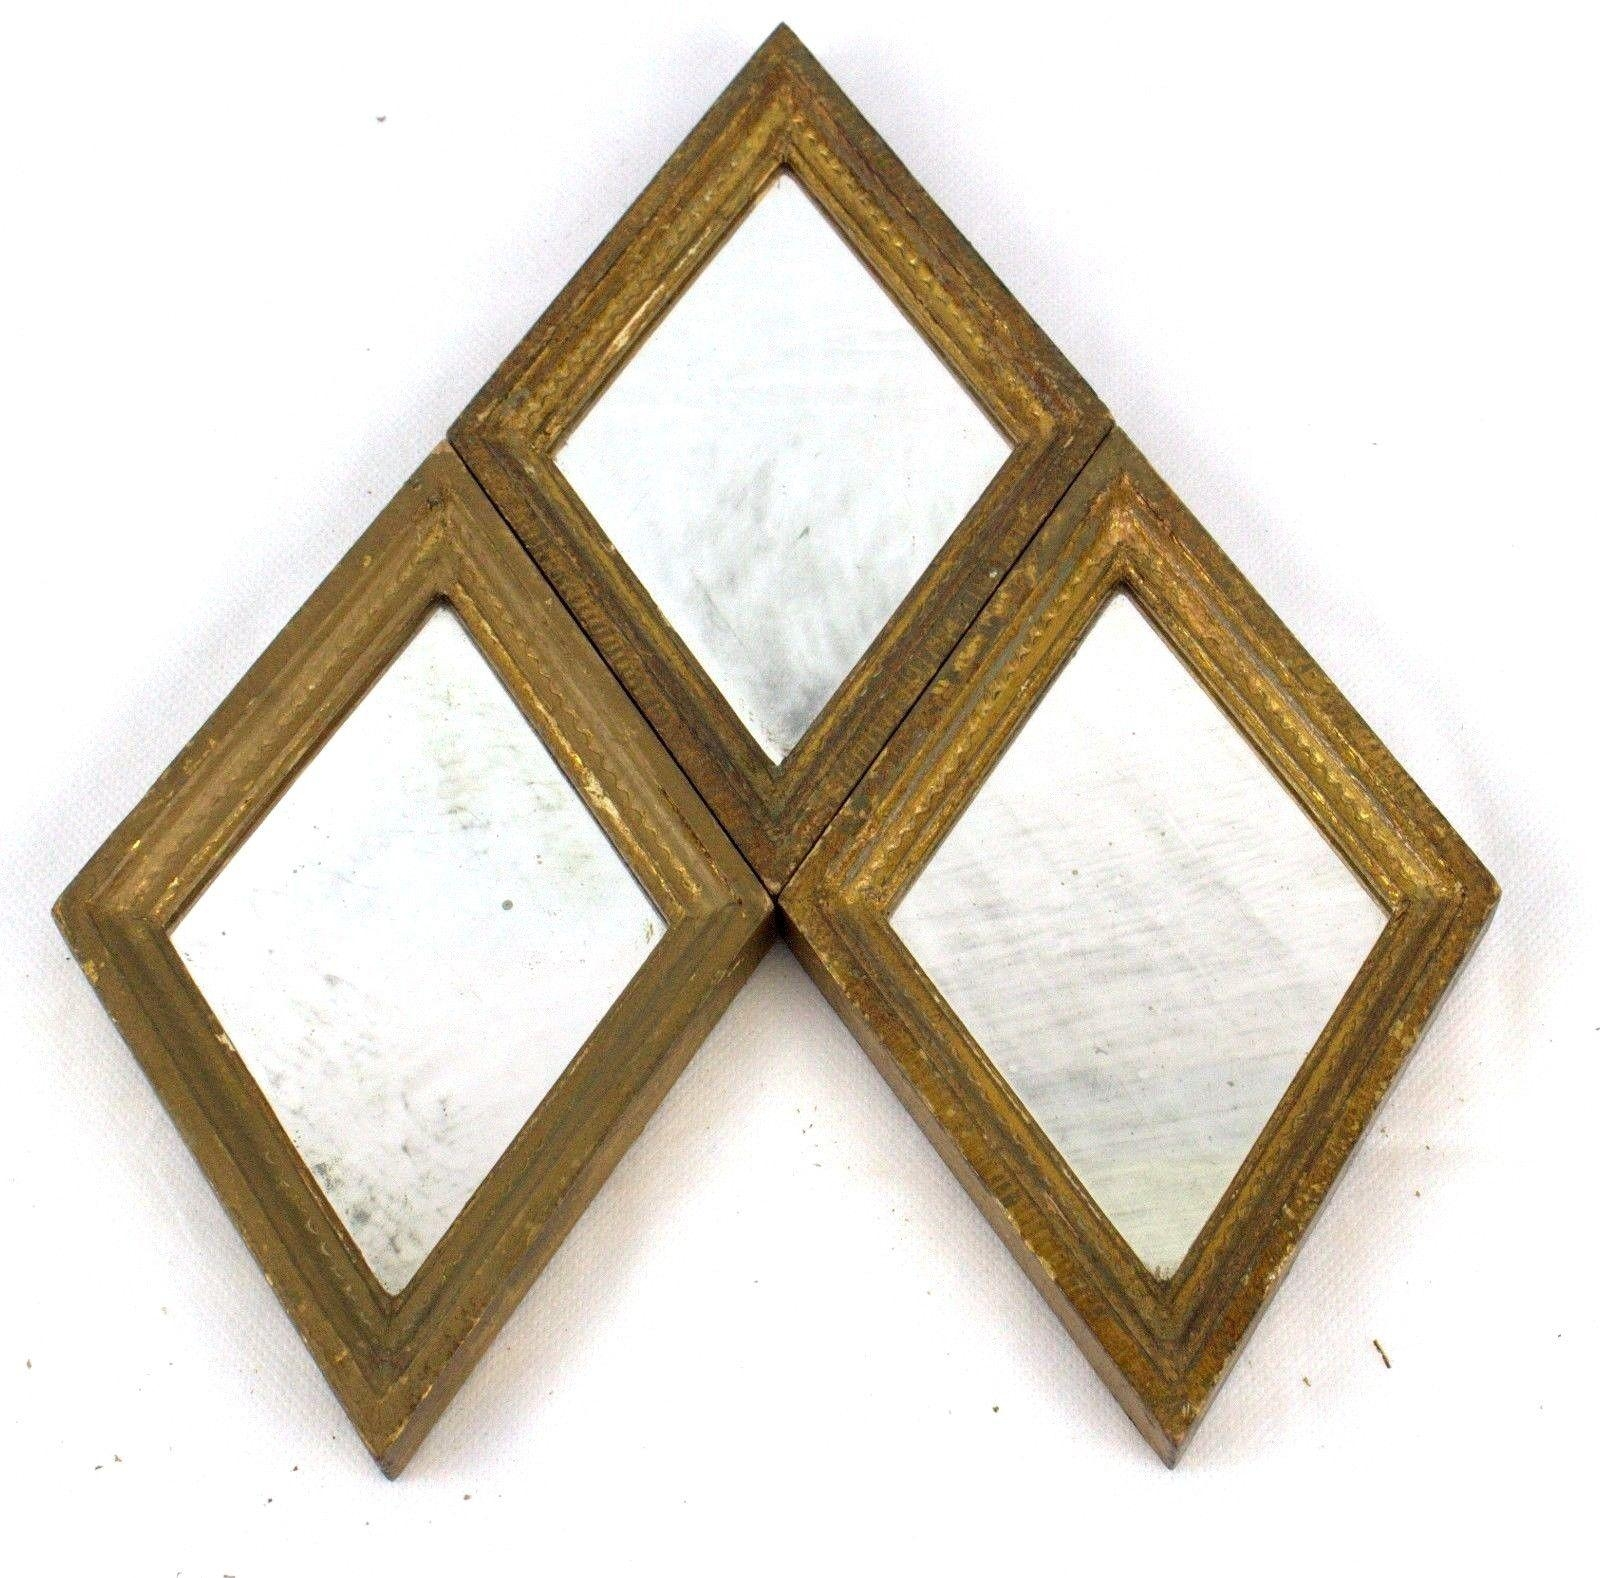 3 Diamond Shaped Mirrorsg Vanghi Small Vintage Gold Framed Pertaining To Small Diamond Shaped Mirrors (Image 1 of 20)